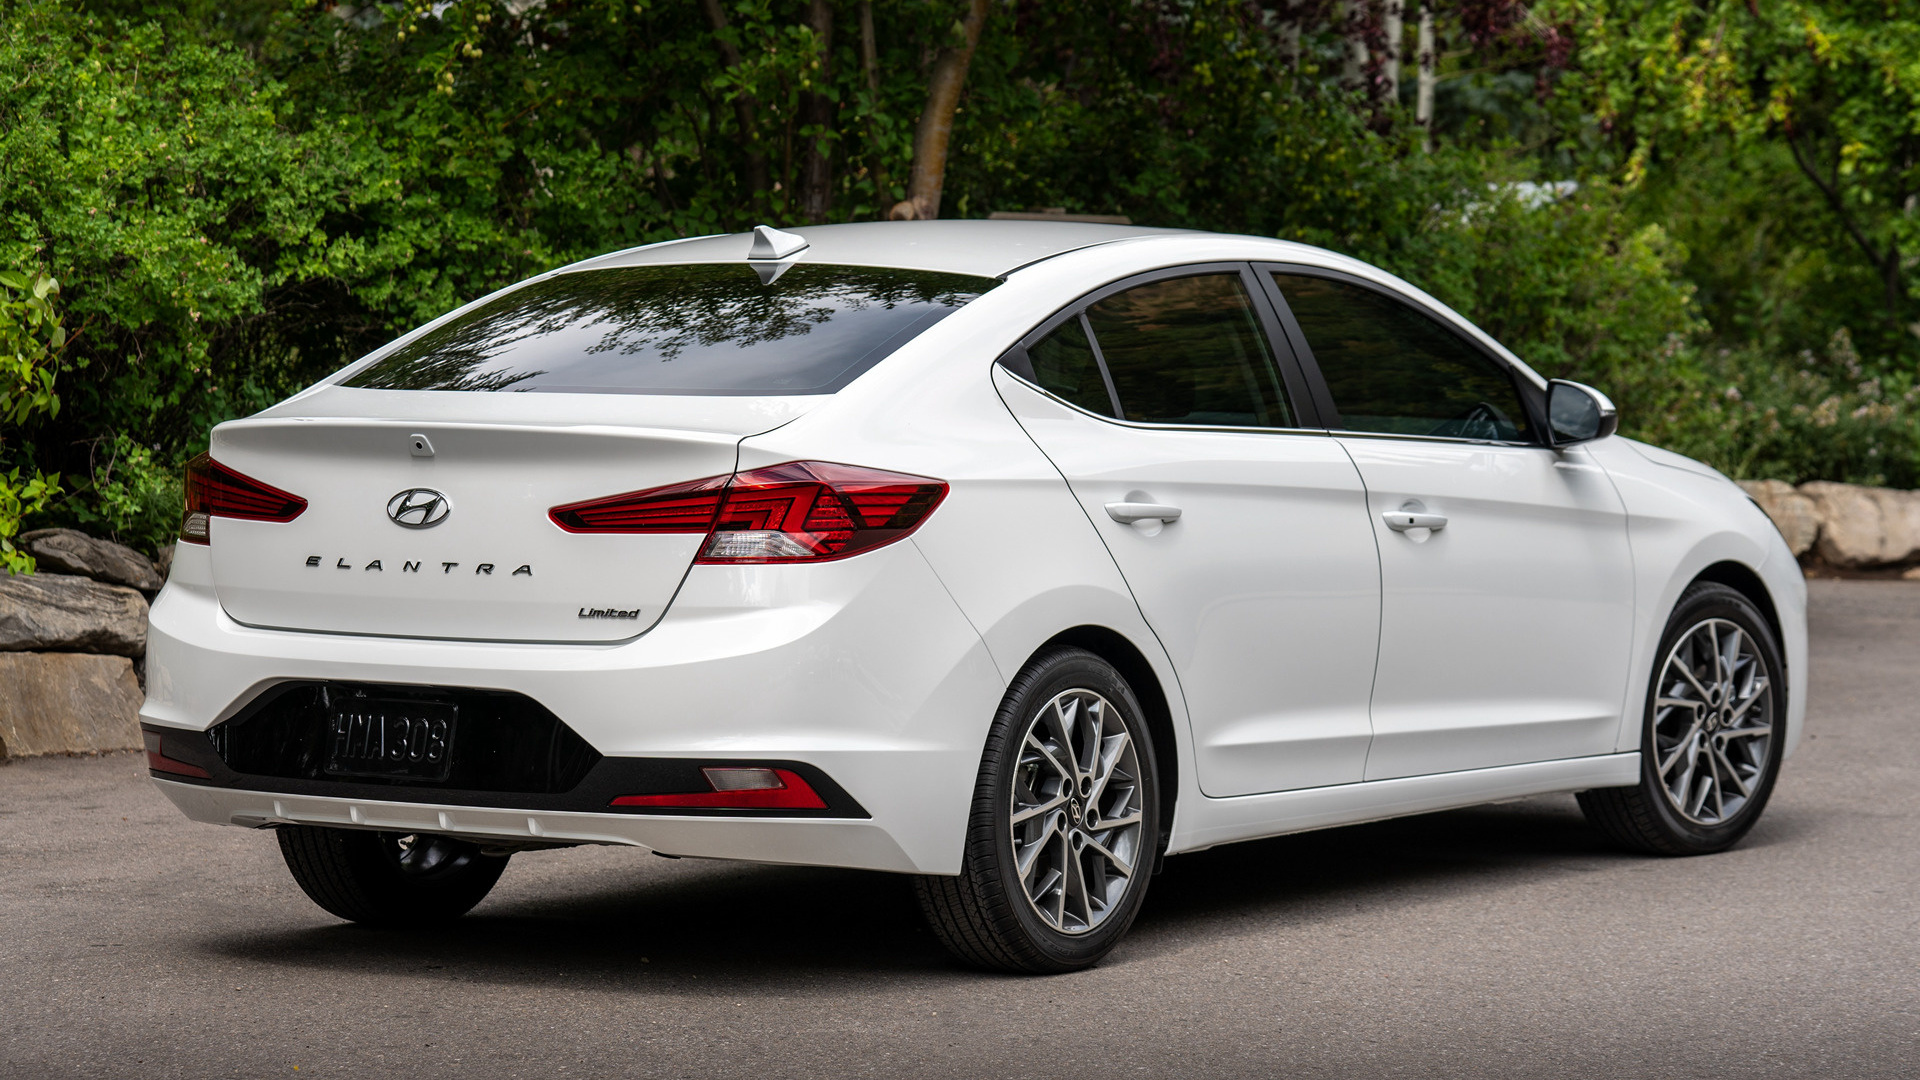 2018 Hyundai Elantra Gt >> 2019 Hyundai Elantra - Wallpapers and HD Images | Car Pixel